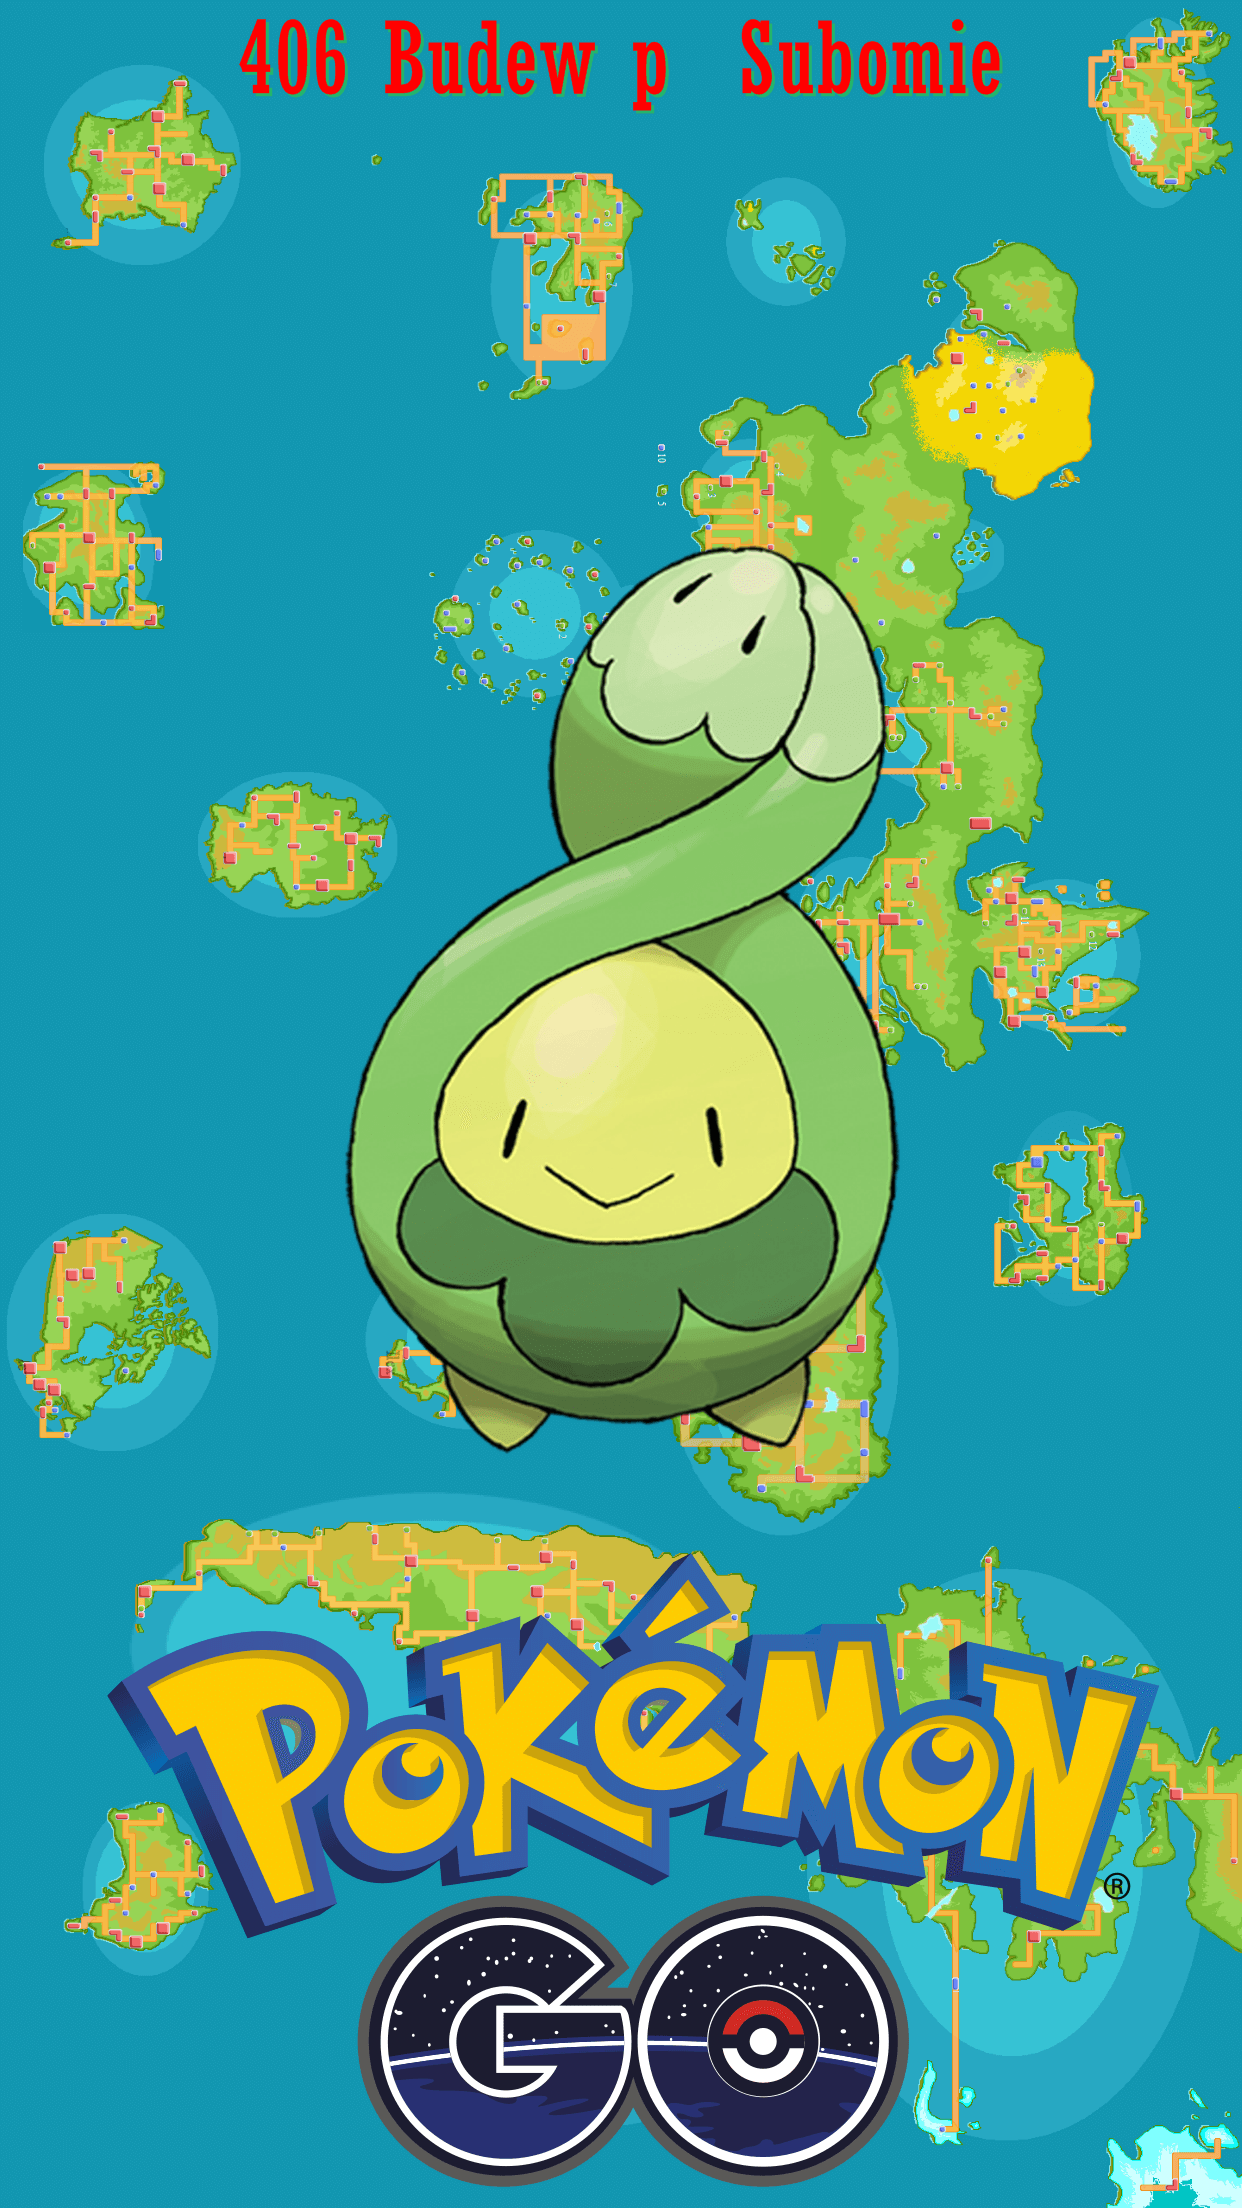 406 Street Map Budew p Subomie | Wallpaper